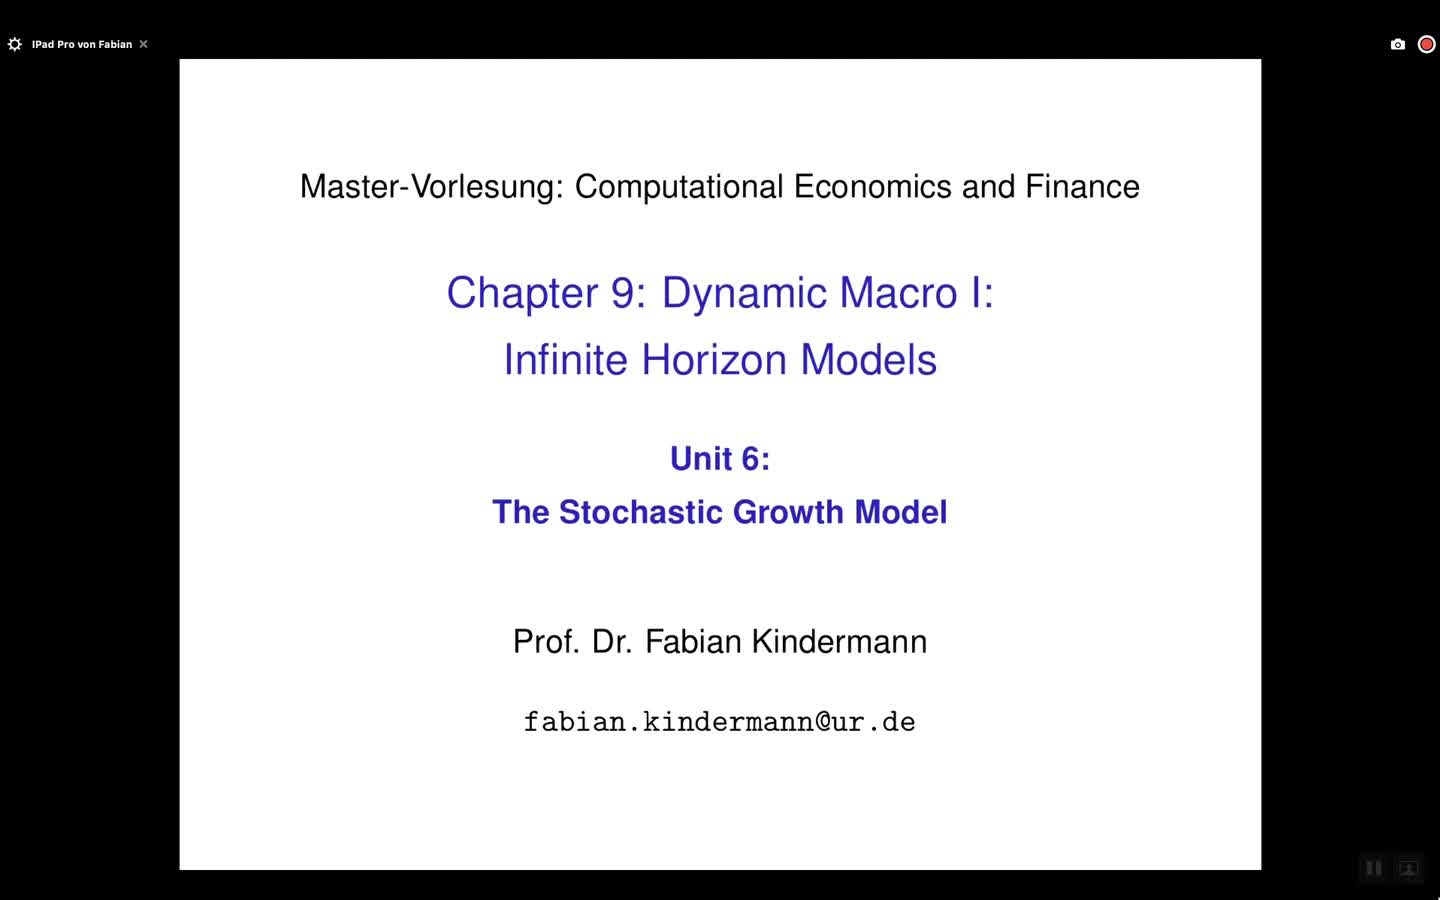 Chapter 9 - Unit 6 - The Stochastic Growth Model